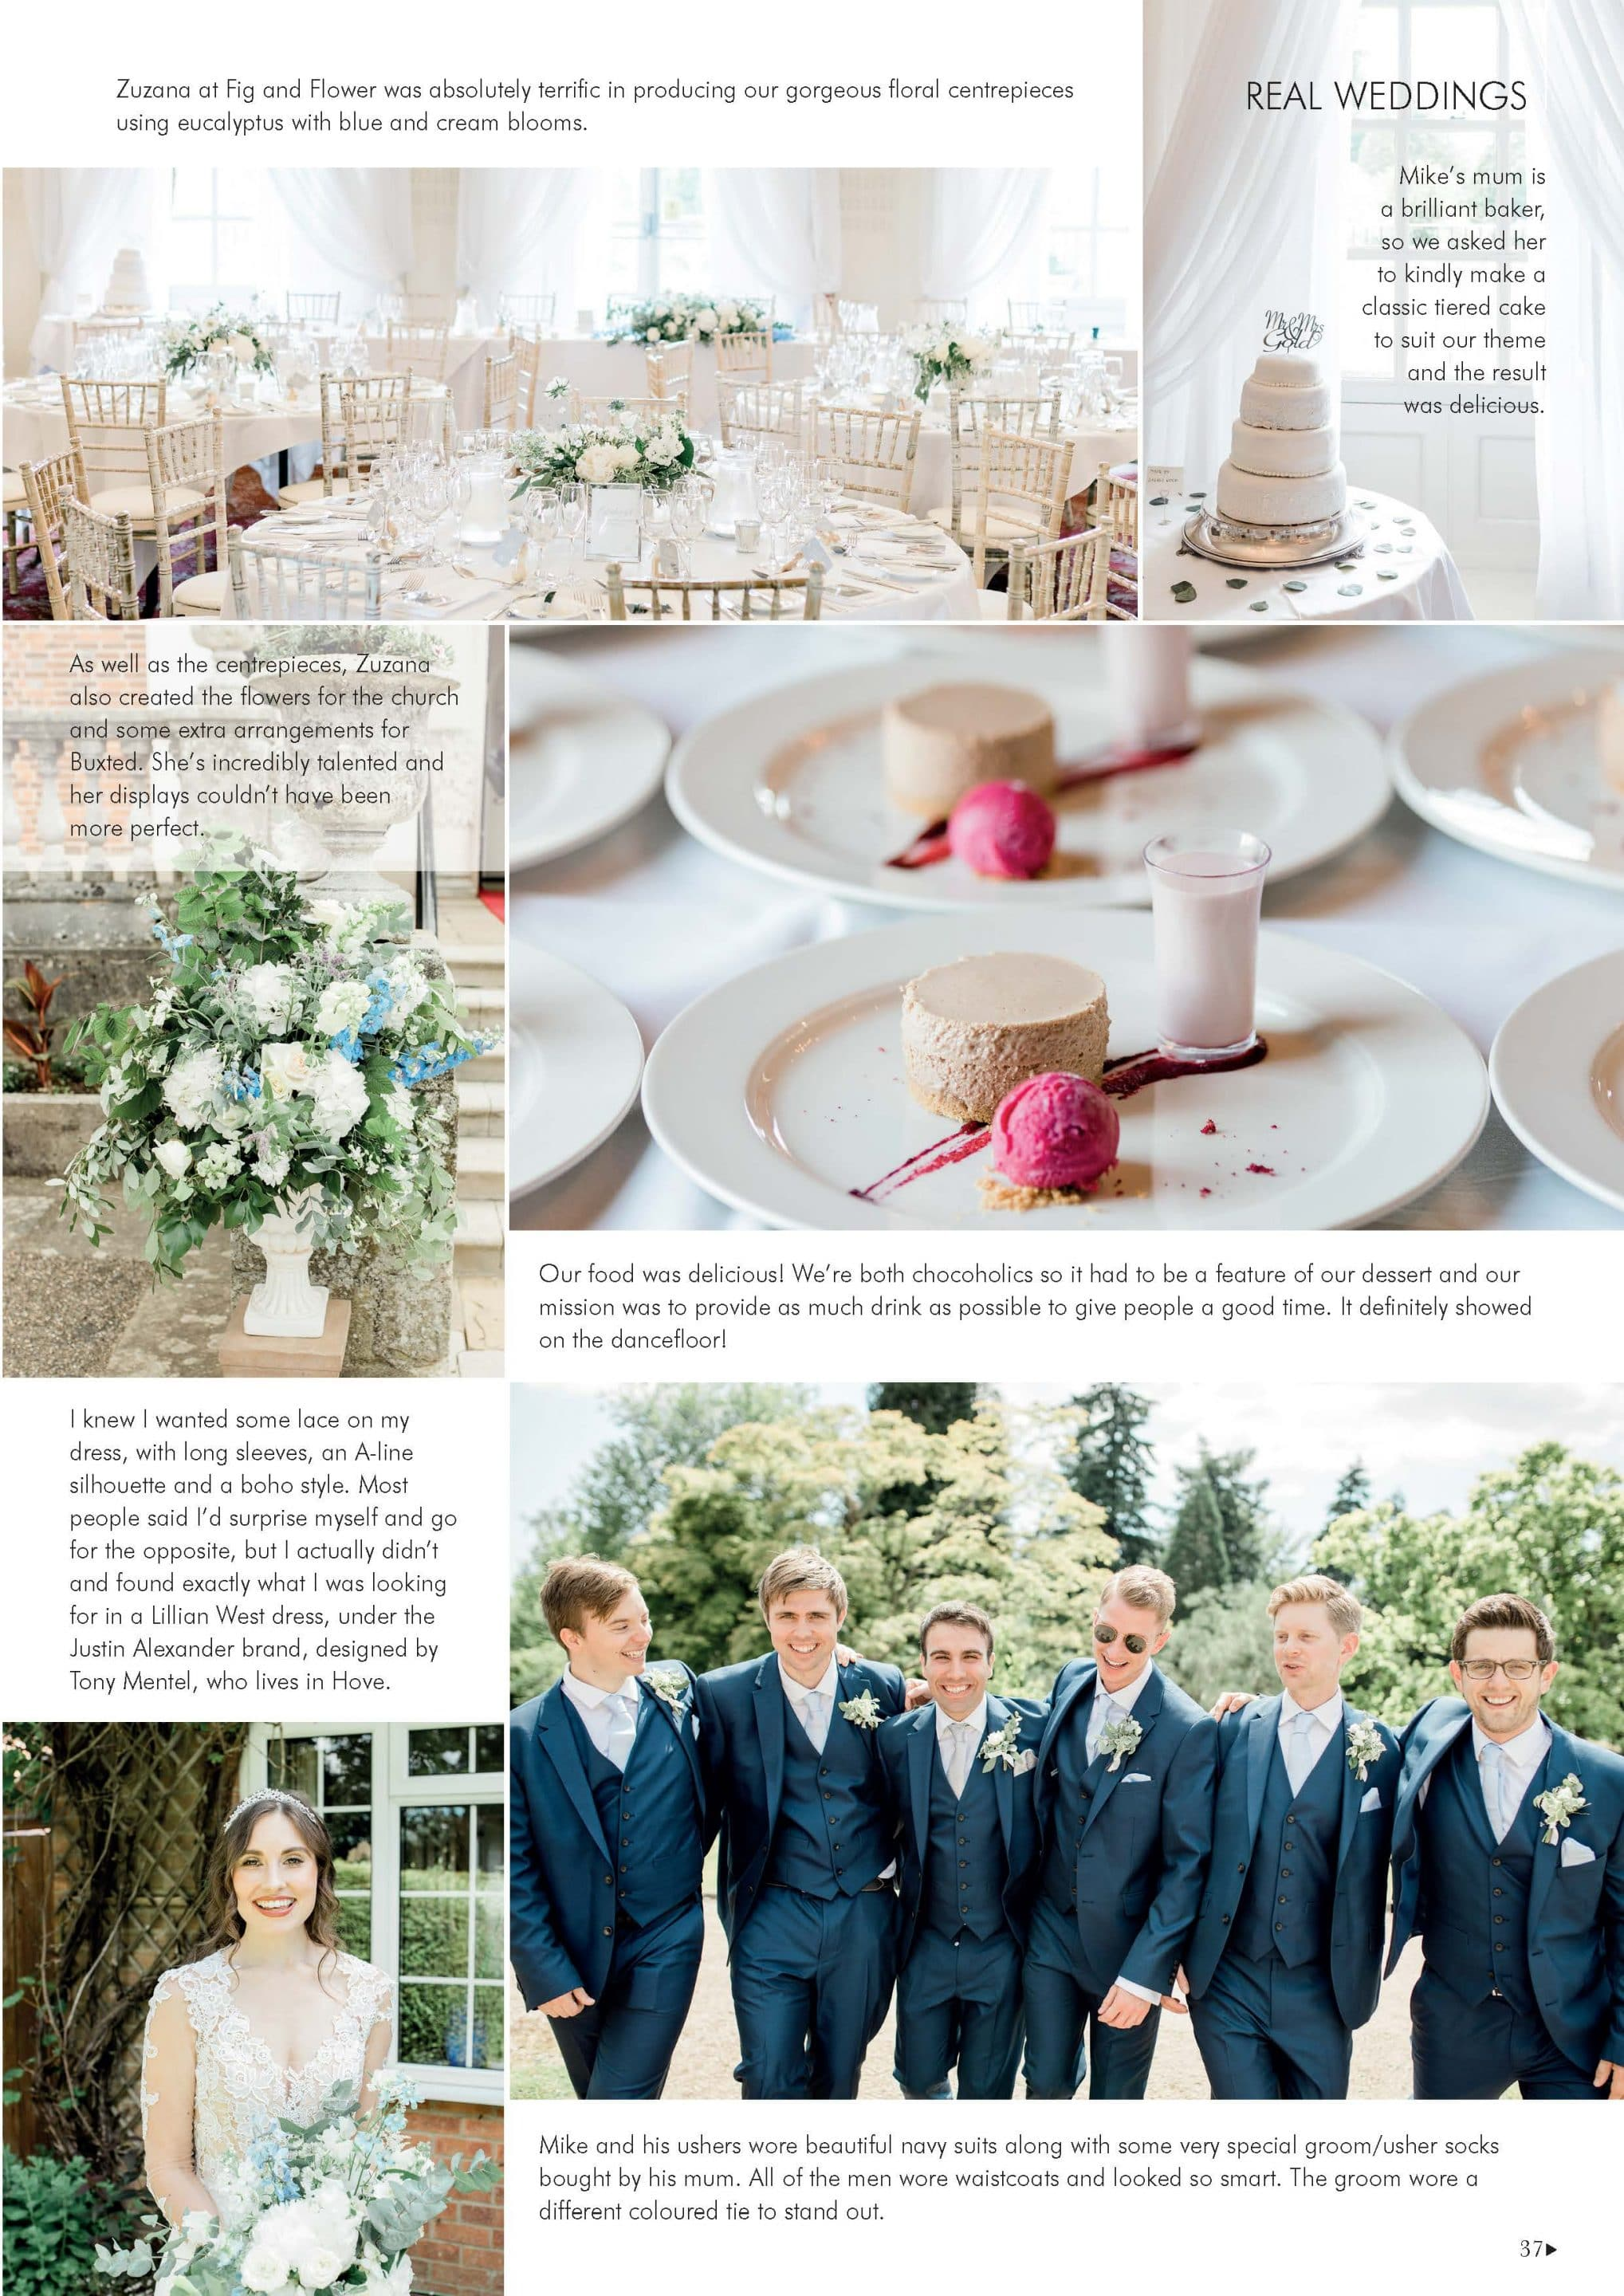 Uckfield wedding at Buxted Park featured in Your Sussex Wedding